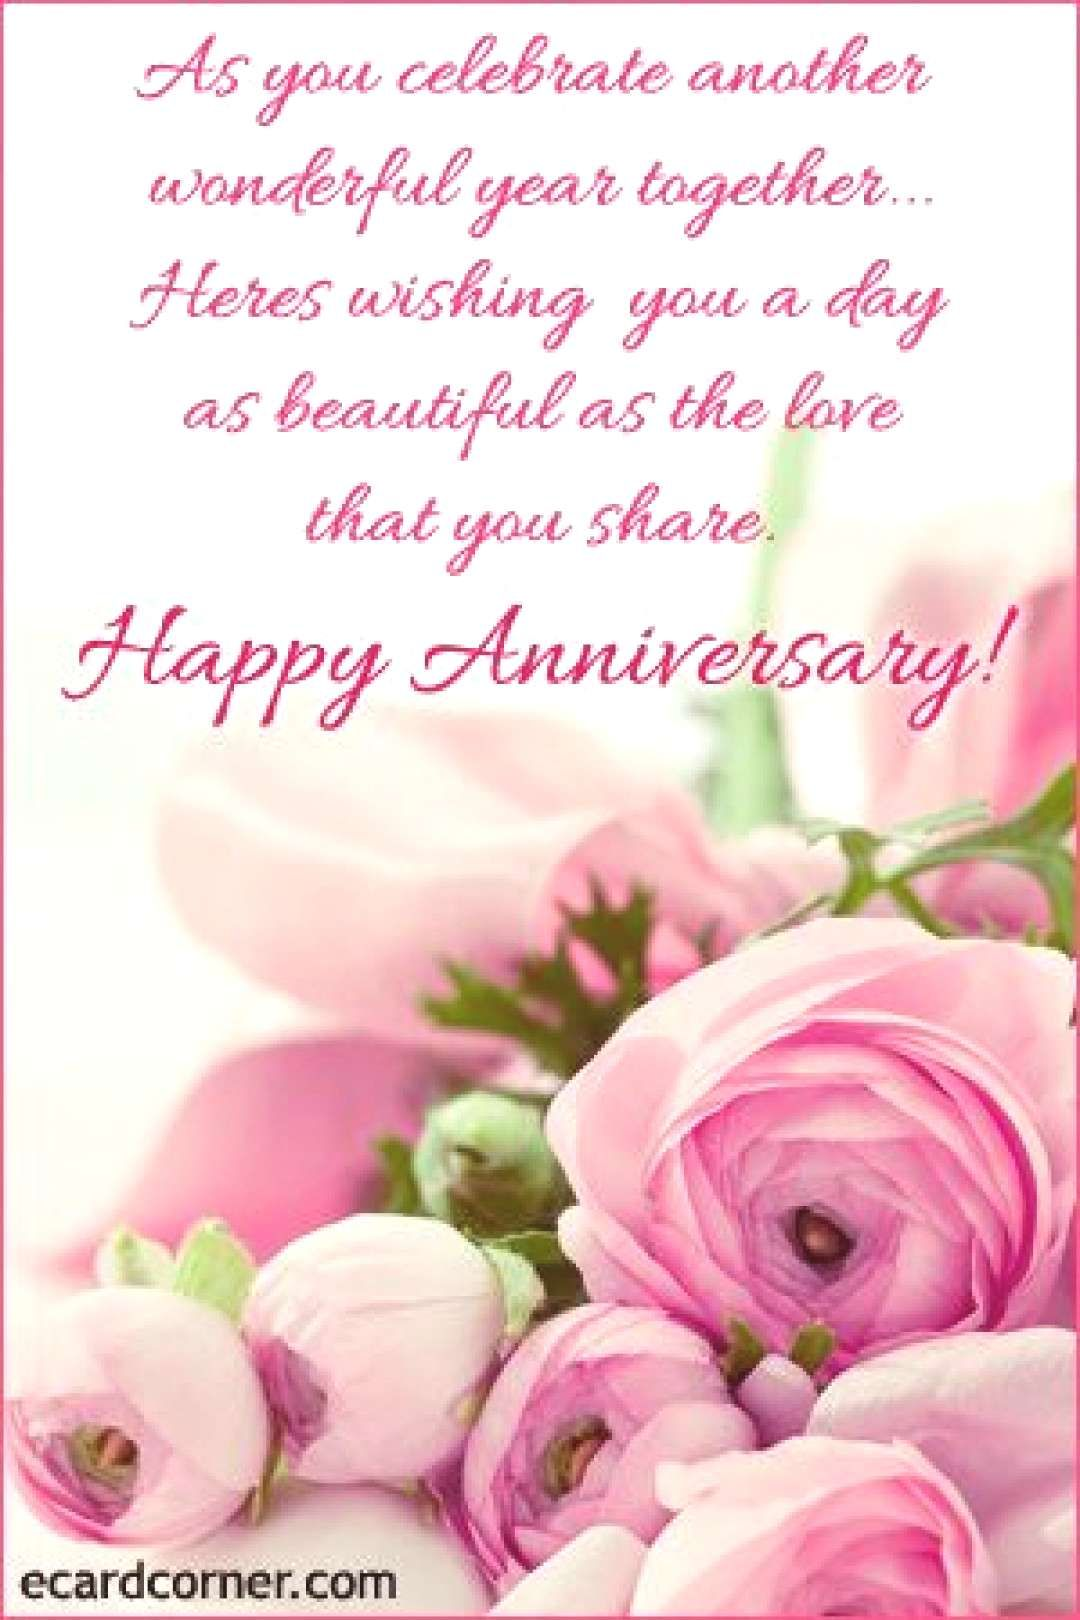 Wedding Anniversary Ecard In 2020 Happy Anniversary Quotes Happy Anniversary Wishes Happy Wedding Anniversary Quotes